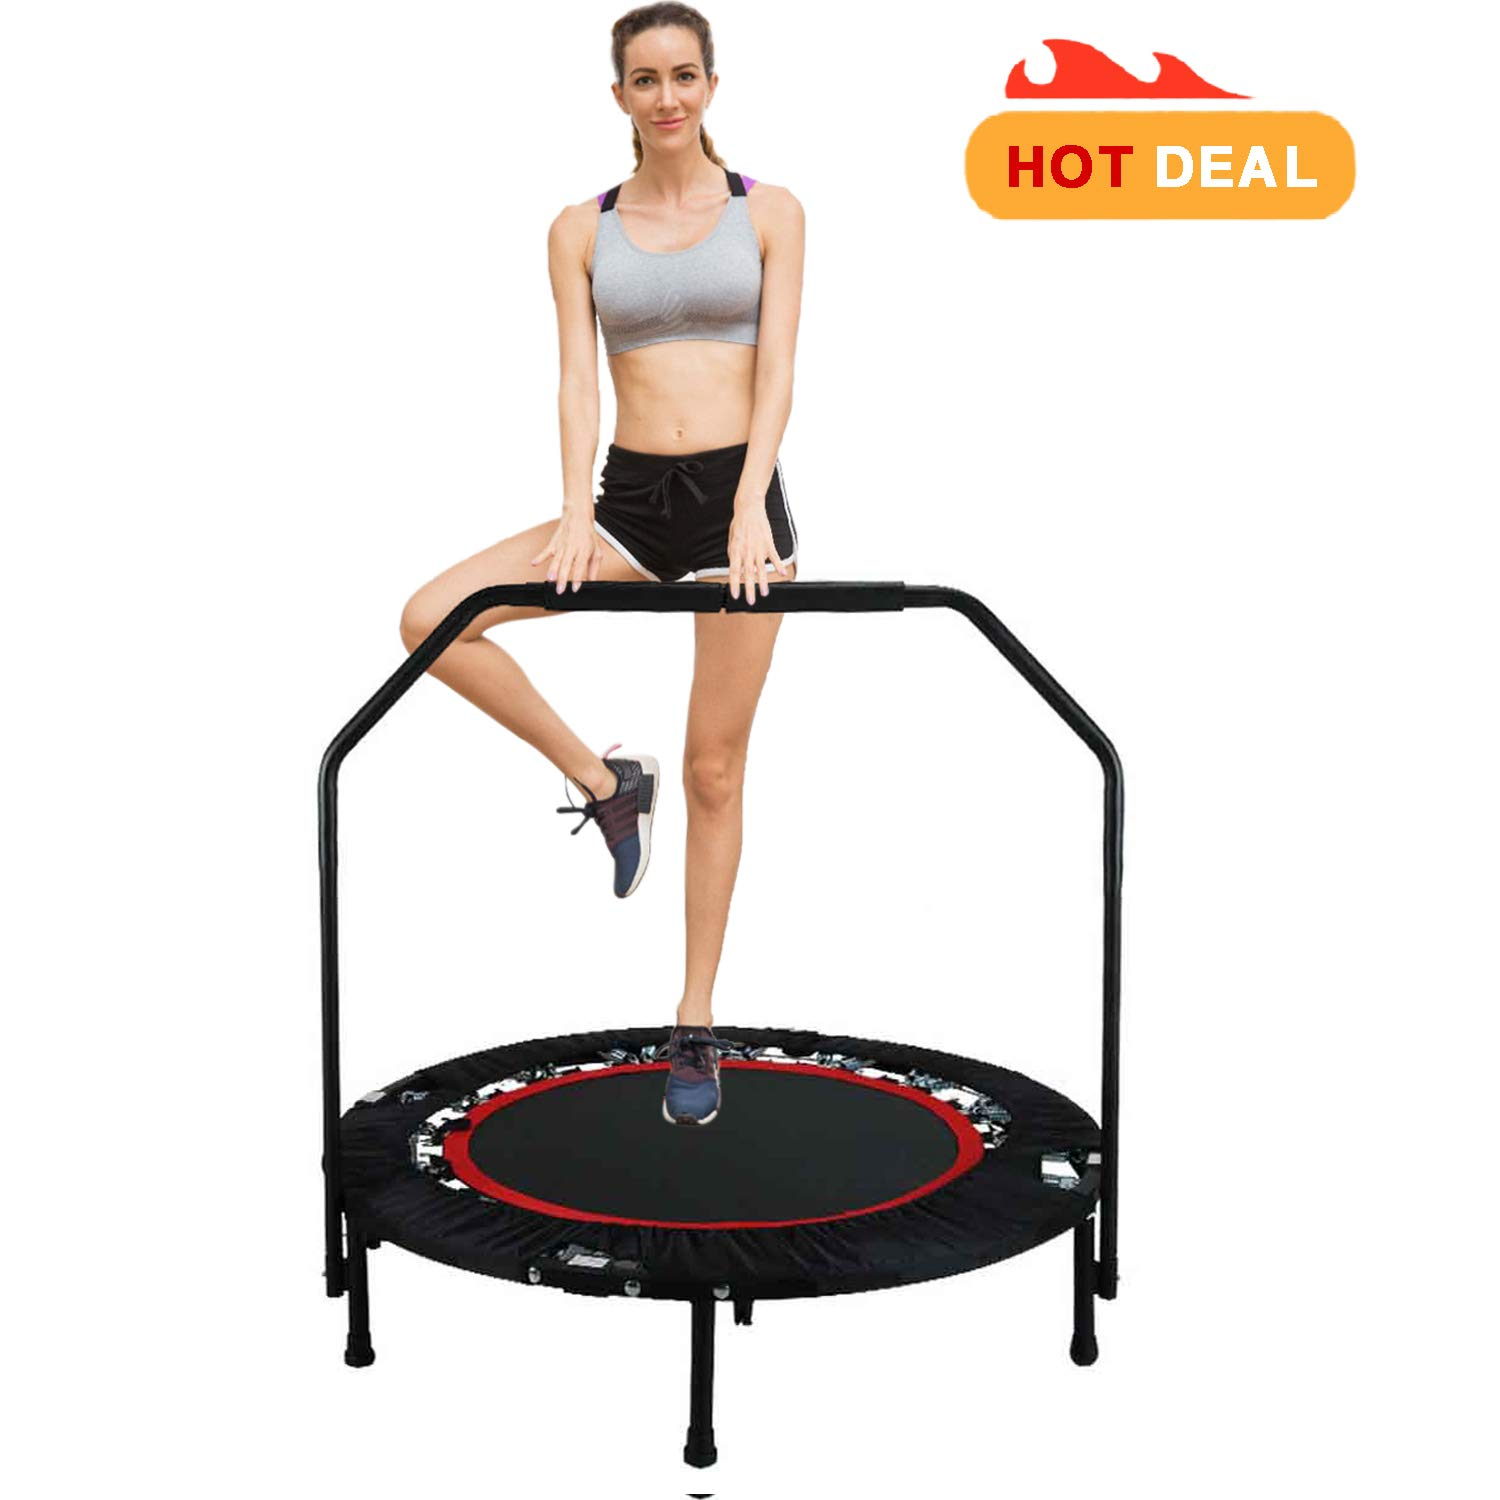 40'' Fitness Exercise Trampoline Foldable with Adjustable Handrail Rebounder Trampoline Indoor Mini Trampoline for Adults or Kids Max. Load 300 lbs Stretch Jump Mat (Red2)